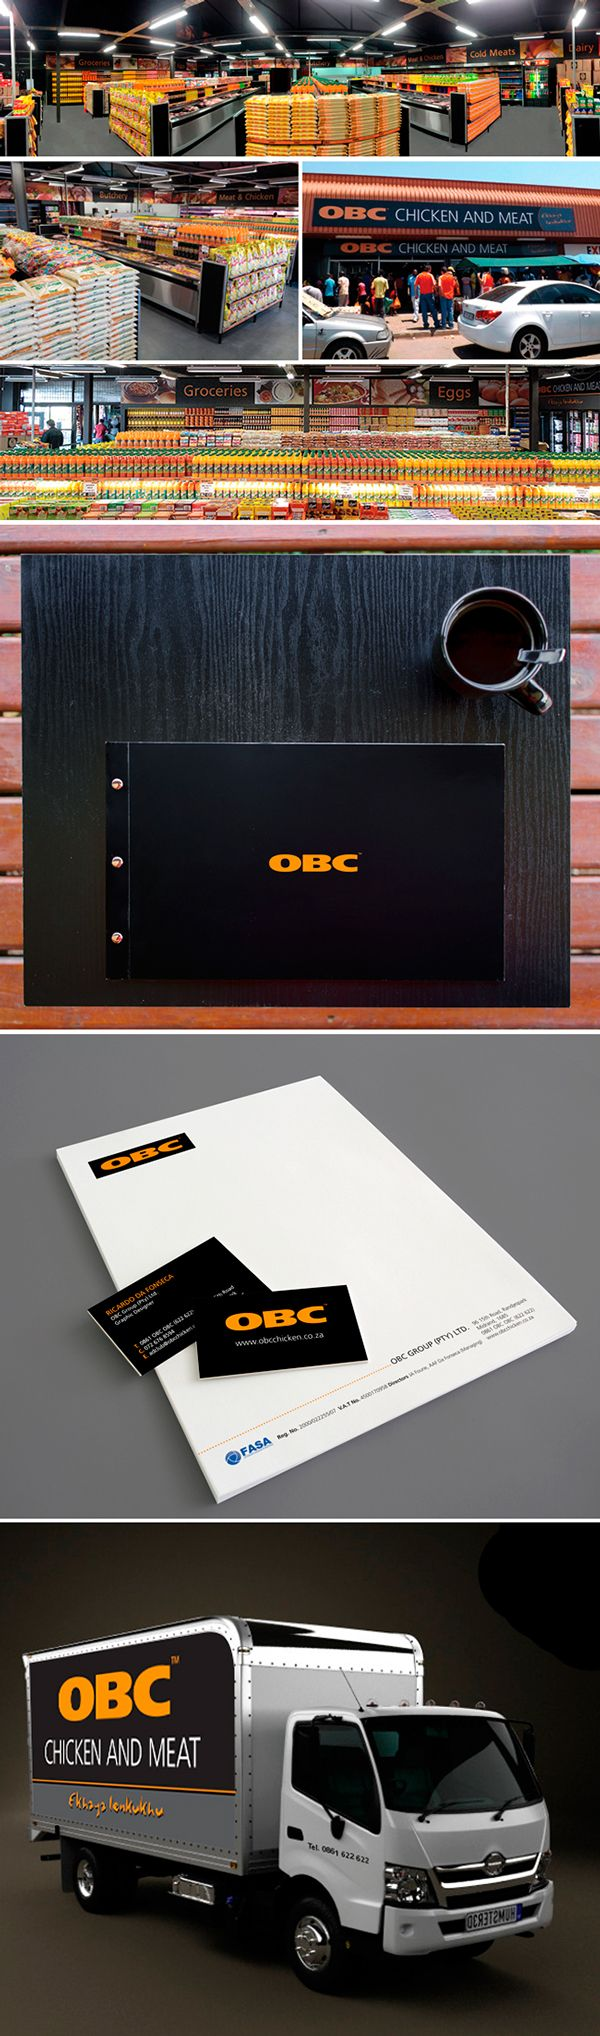 OBC Chicken and Meat on Behance